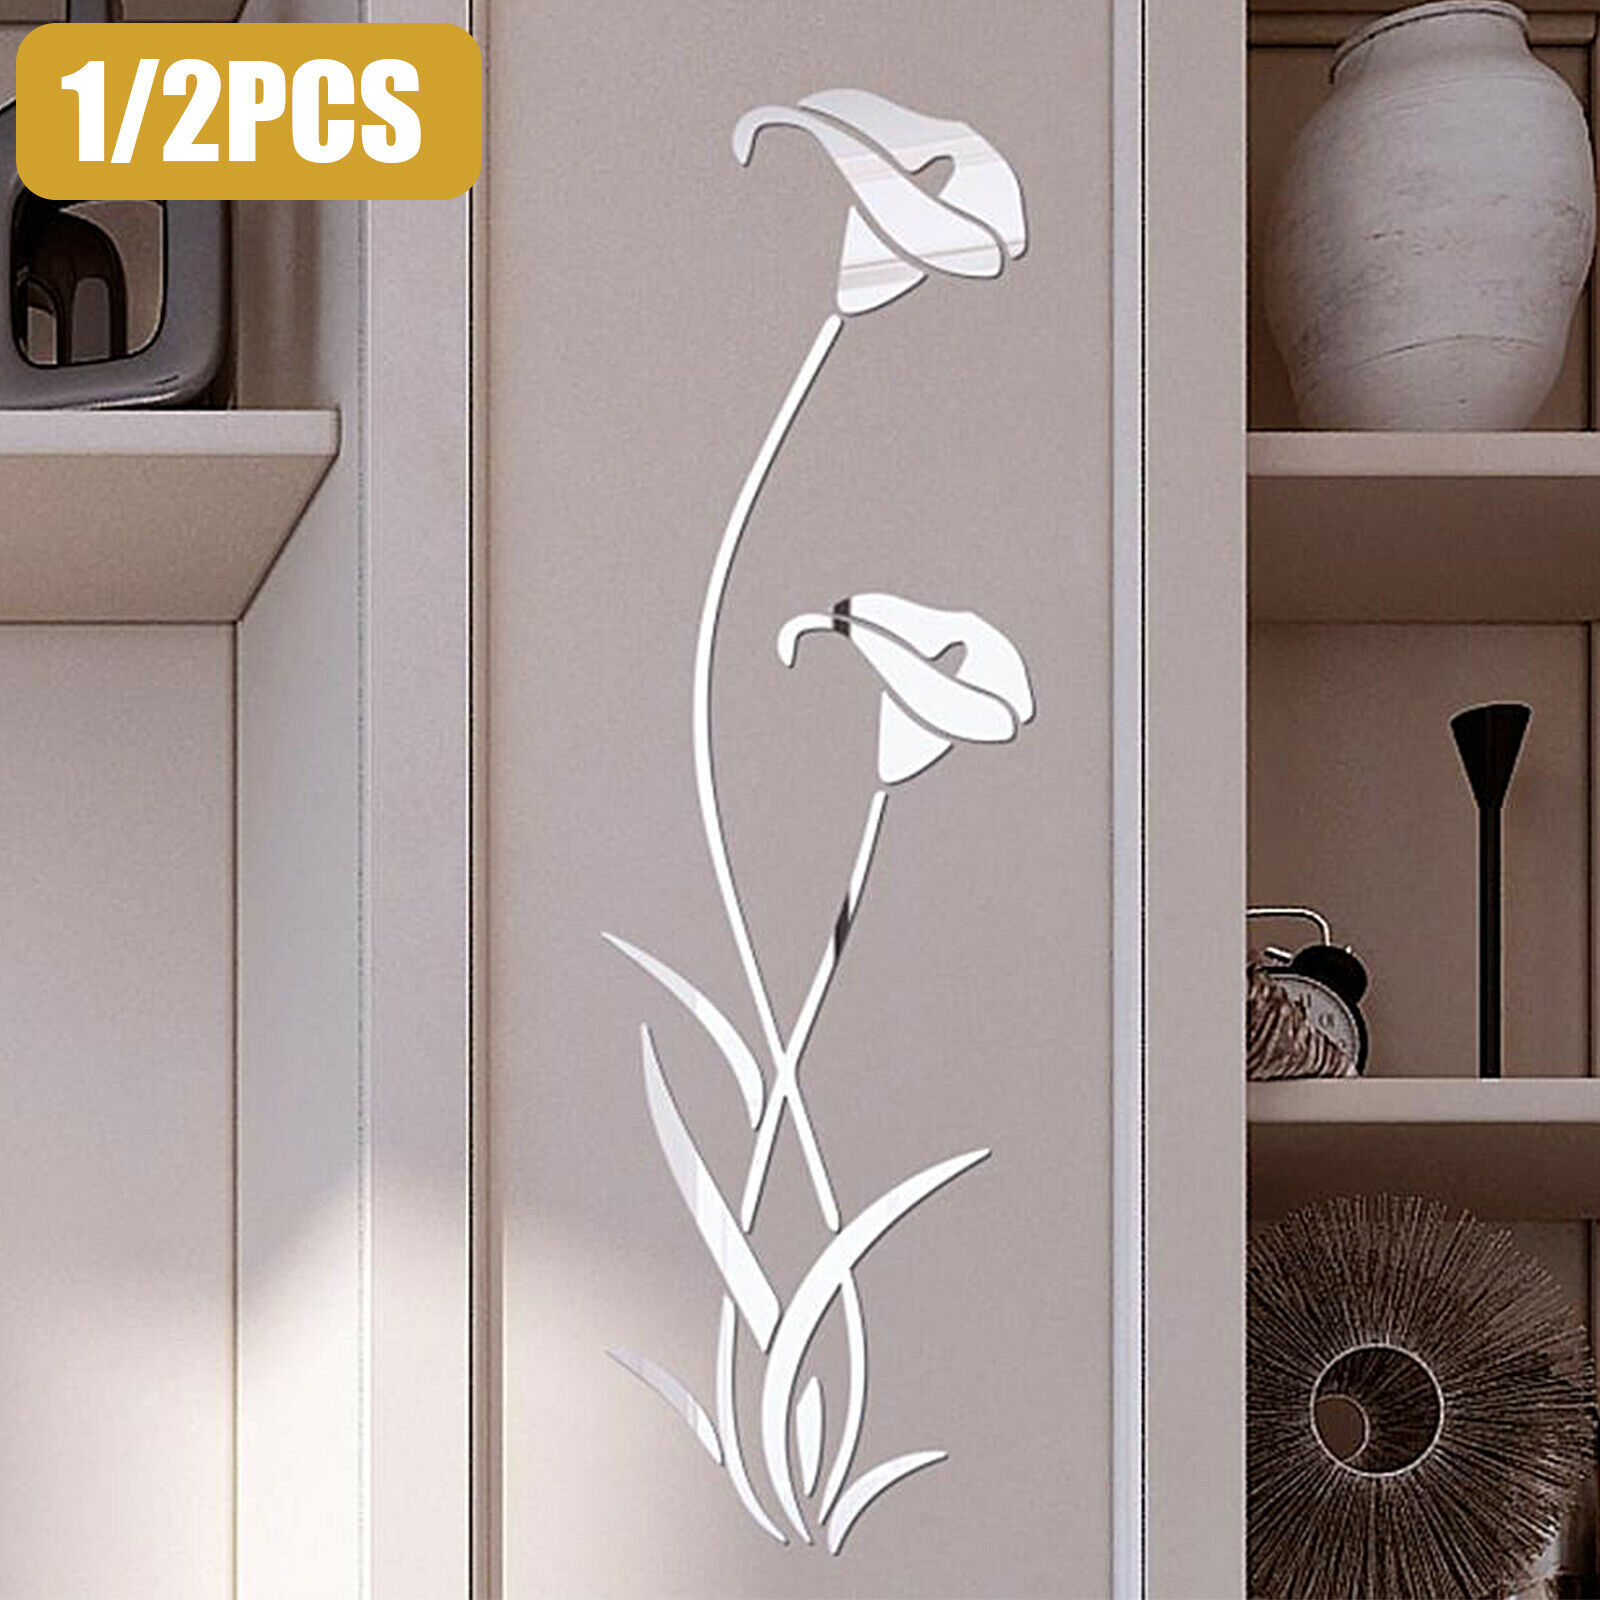 Removable 3D Mirror Flower Wall Sticker Acrylic Mural Decal Home Room Decor s5